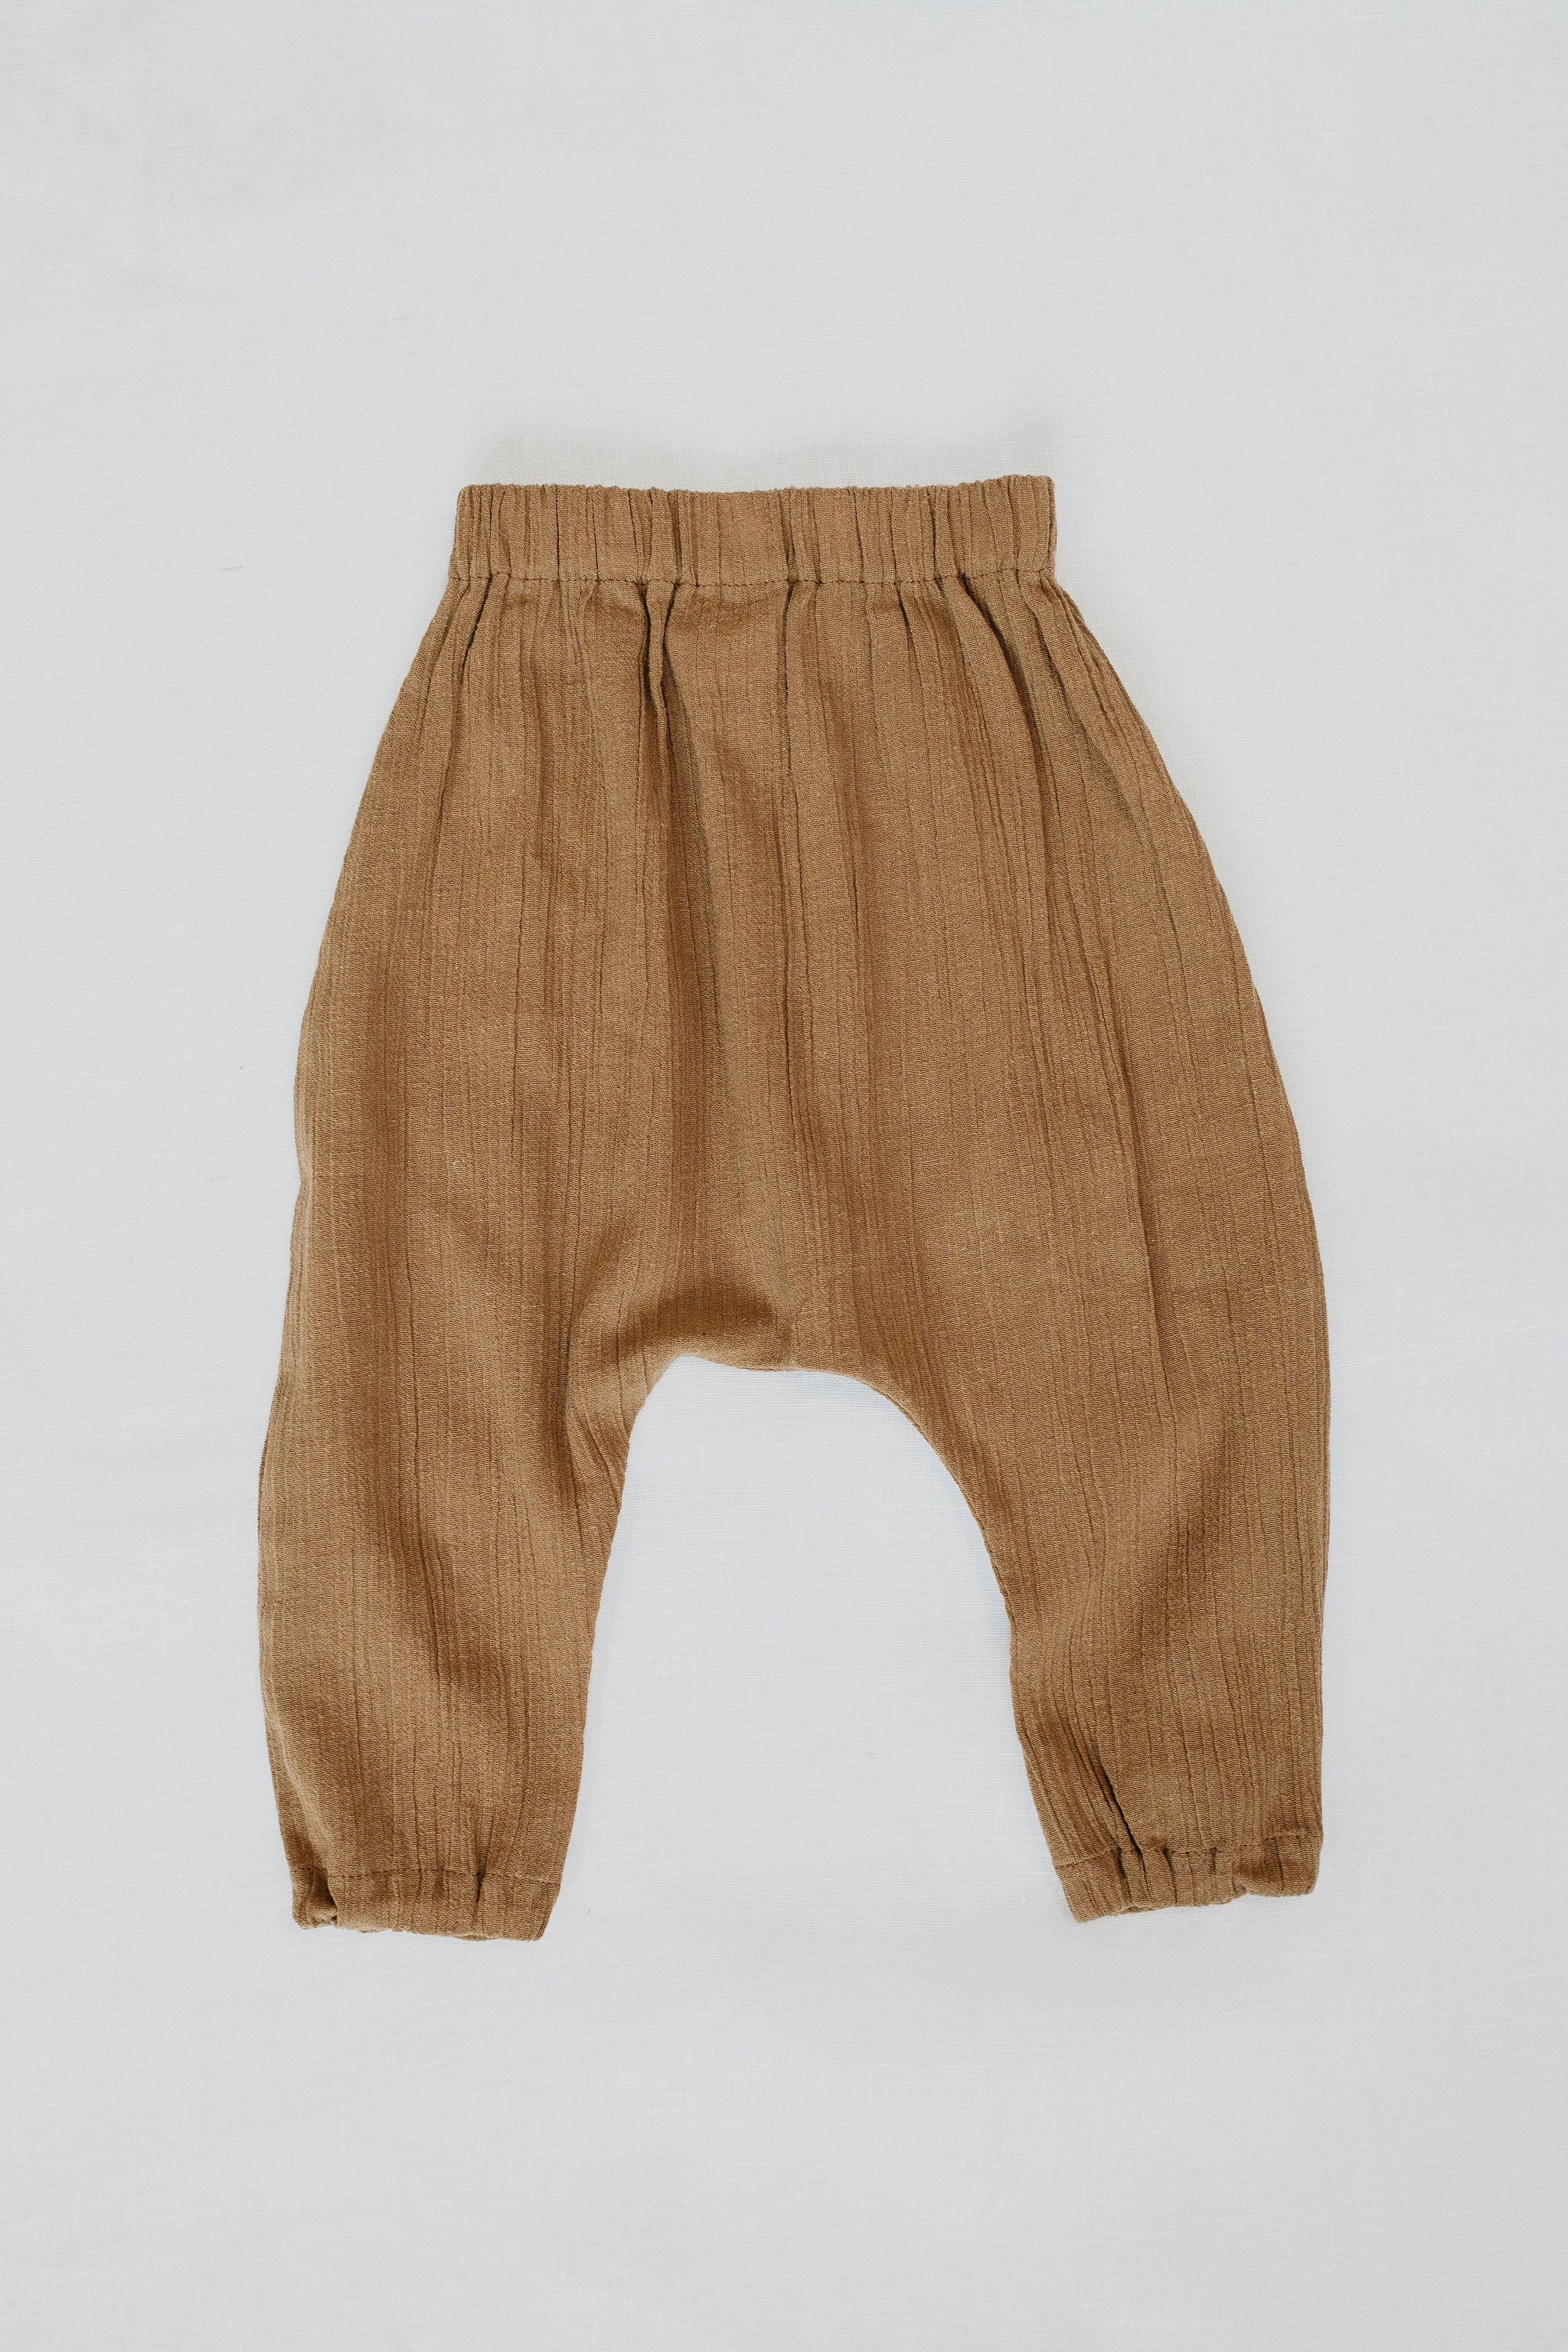 The Winnie Drop Pants